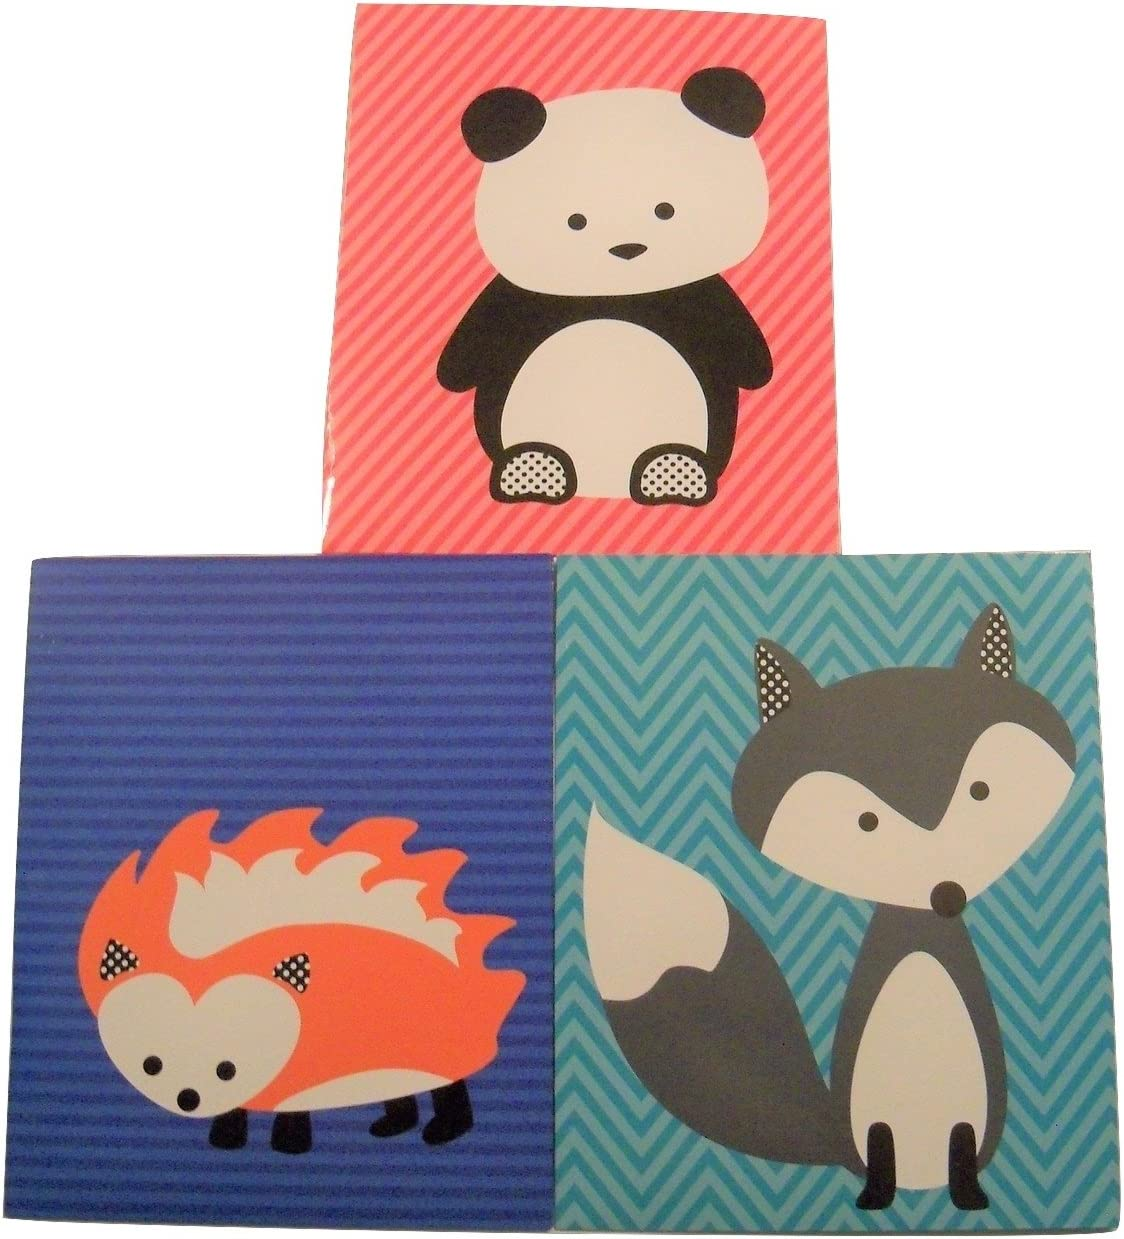 Studio C Carolina Pad 3 Folder Set ~ The Hair of The Dog Collection (Panda on Pink Stripes, Hedgehog on Navy, and Fox on Blue)